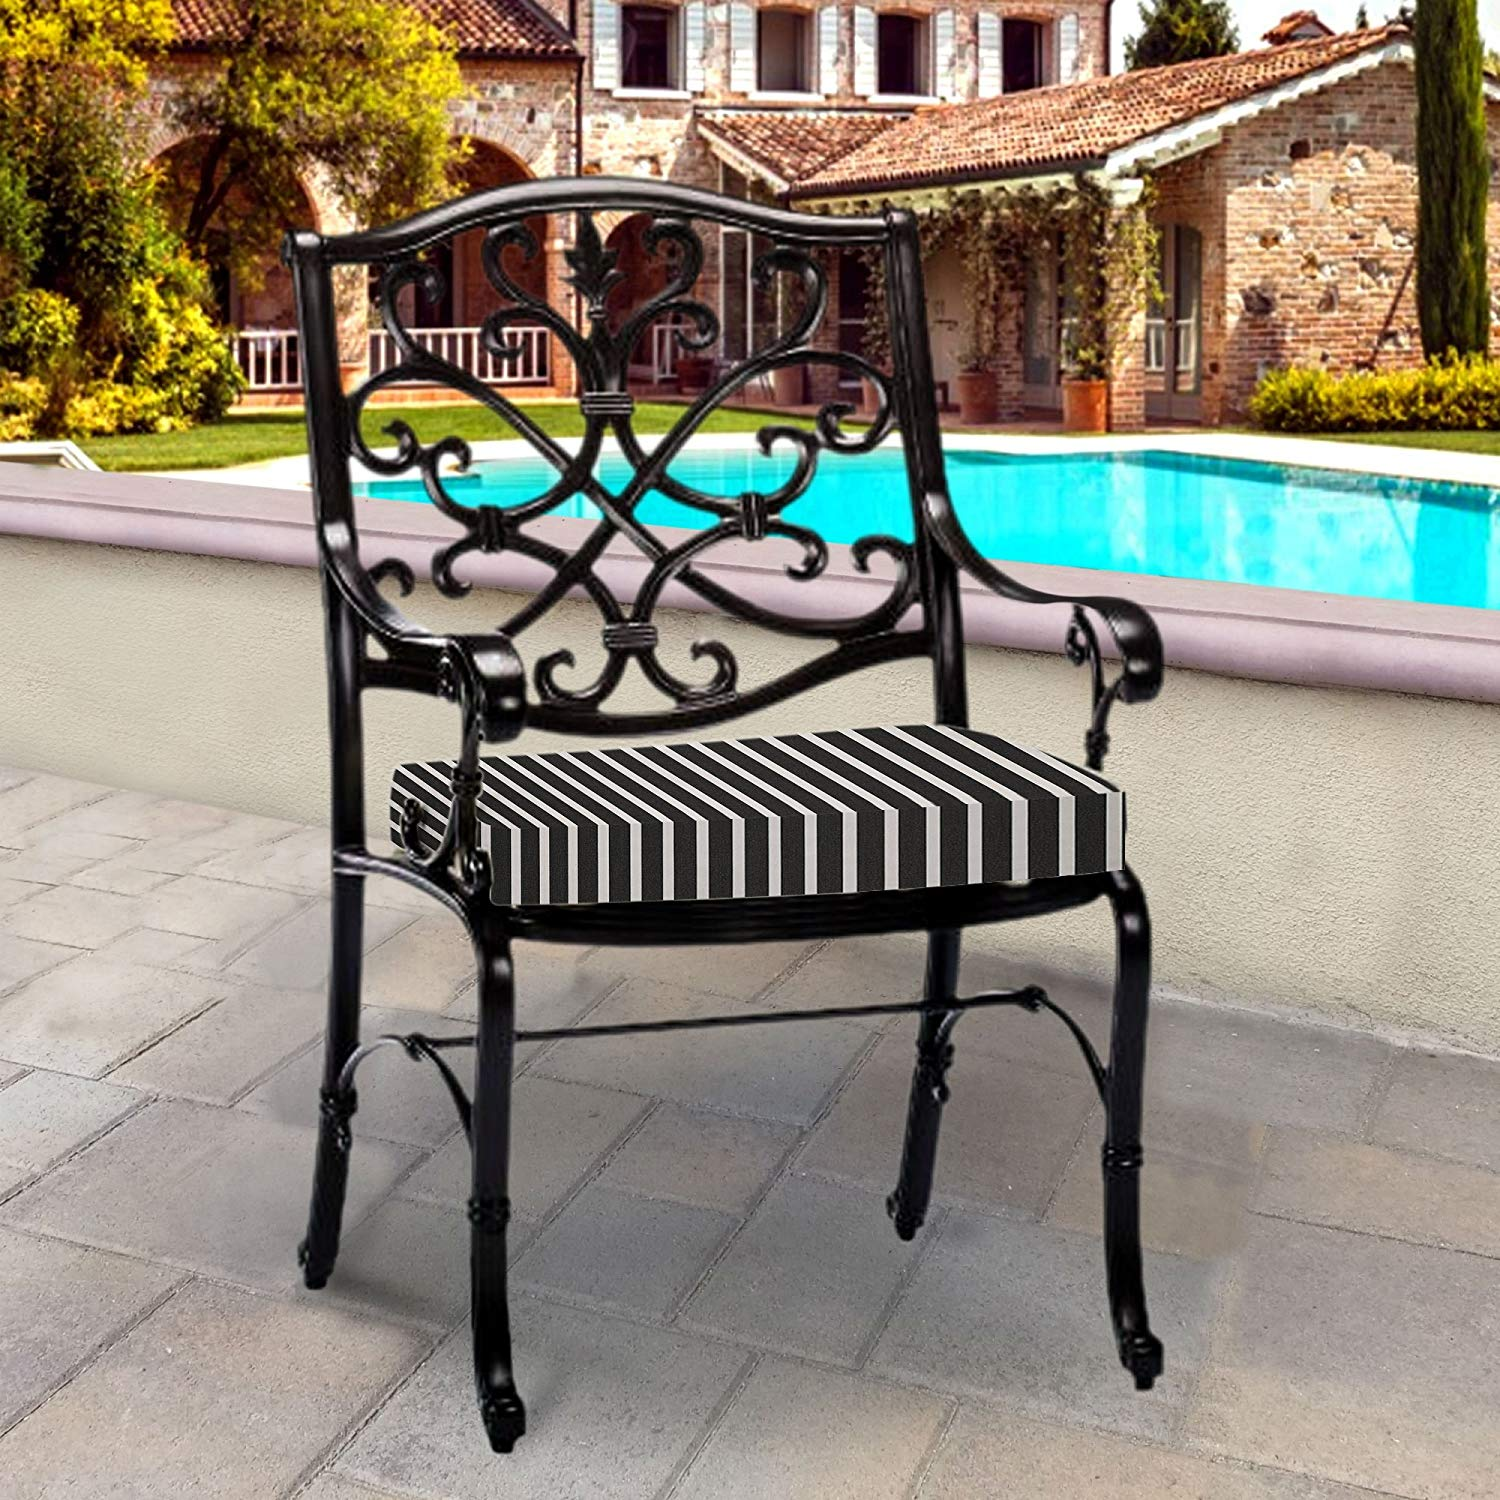 Thomas Collection Outdoor Cushions, Black White Patio Cushions, Outdoor Dining Cushions, One Outdoor Patio Seat Cushion, Handmade in USA, 13143